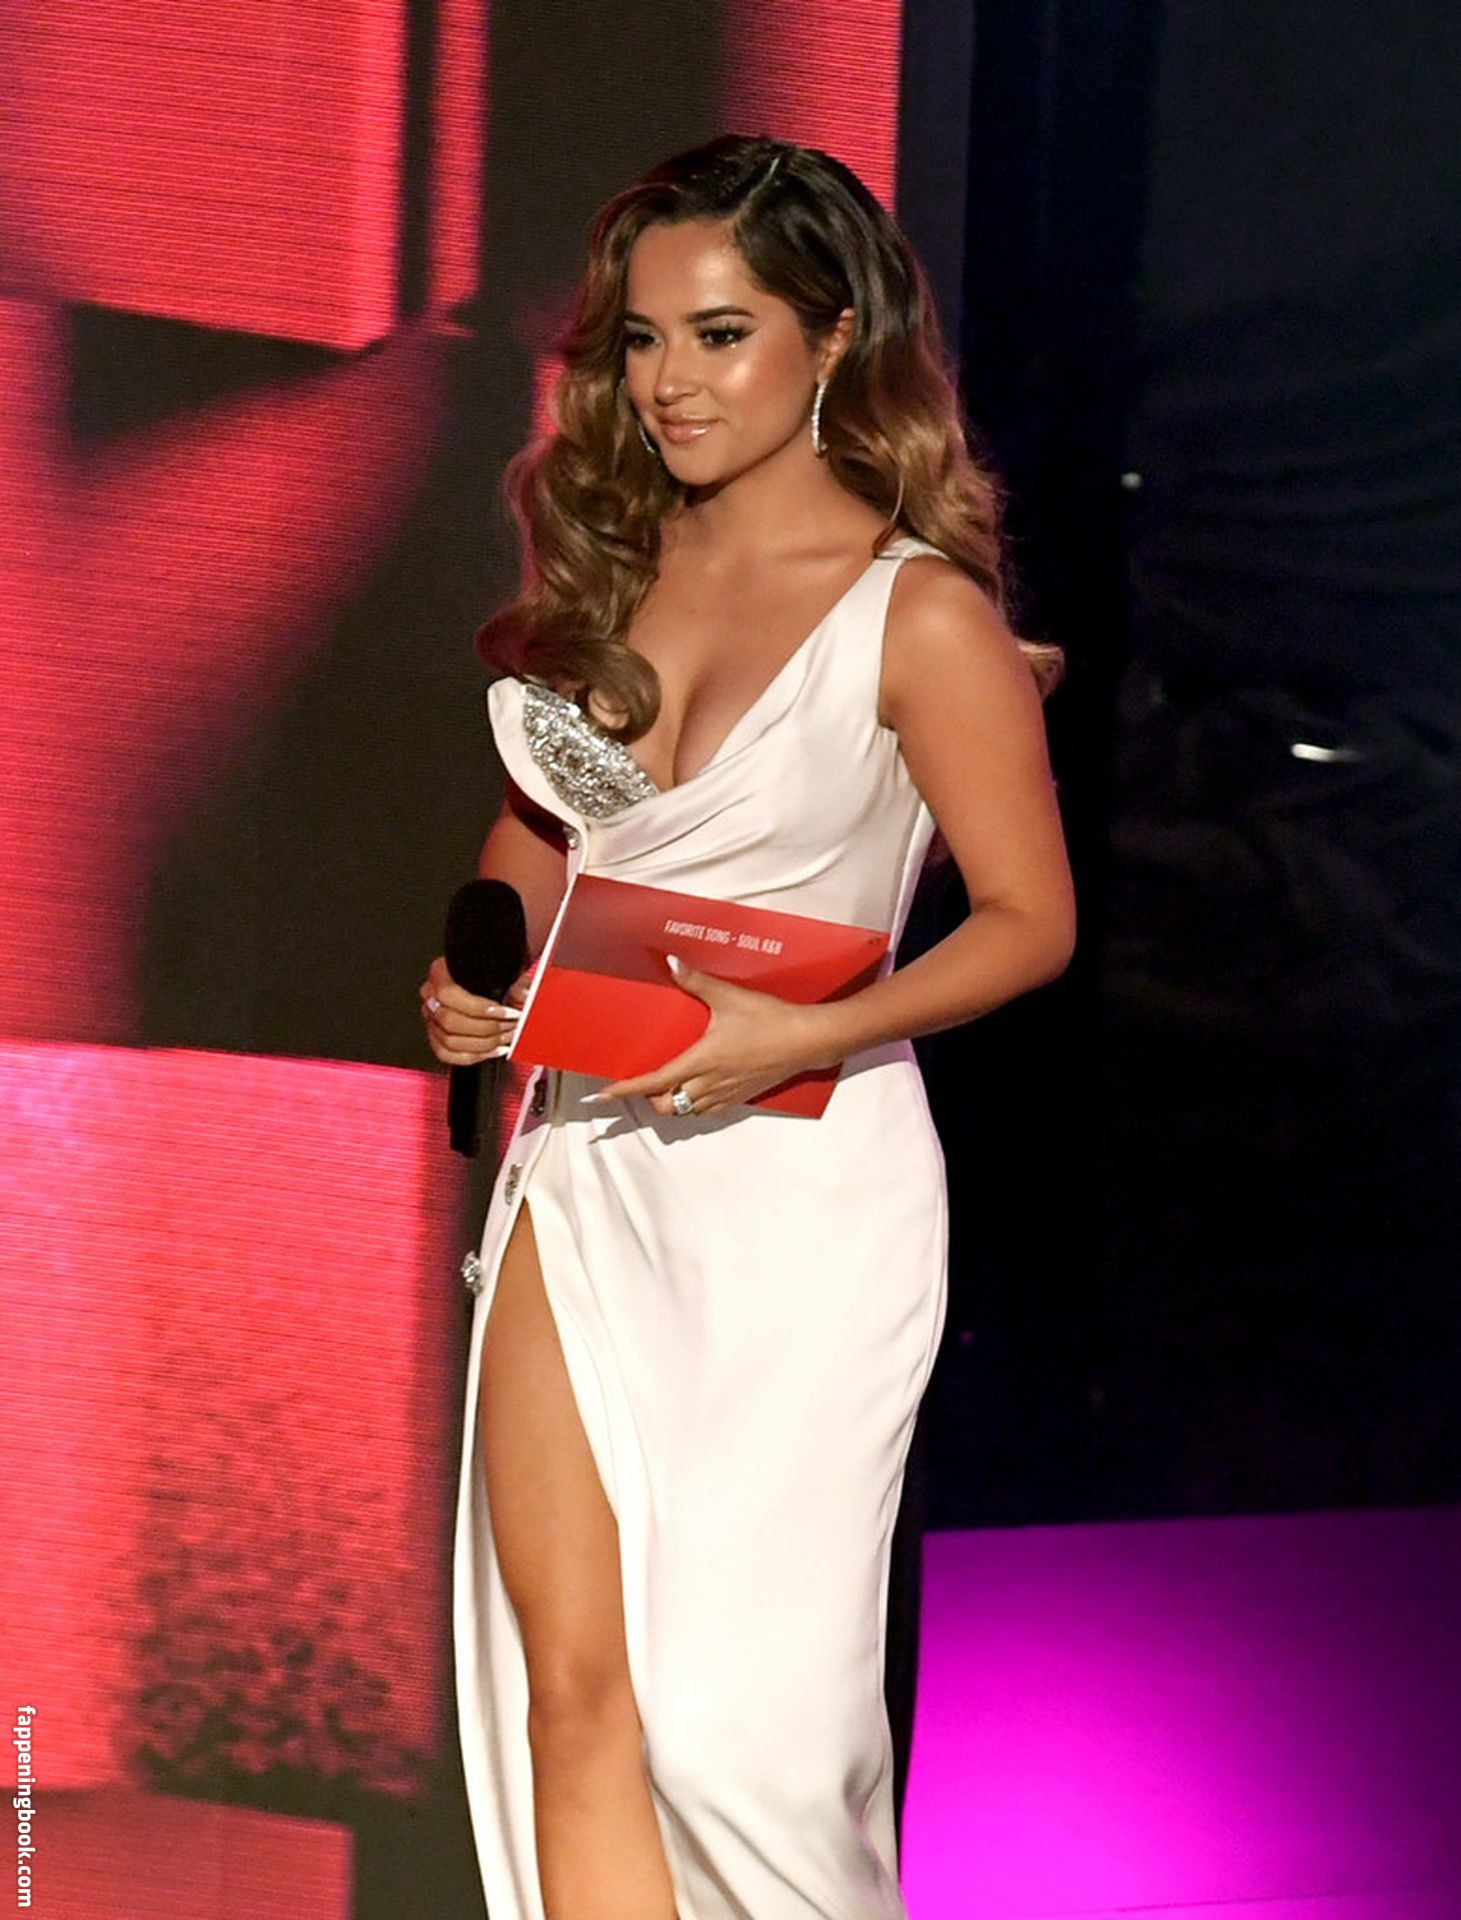 Becky G Nude and Hot Photos - Scandal Planet